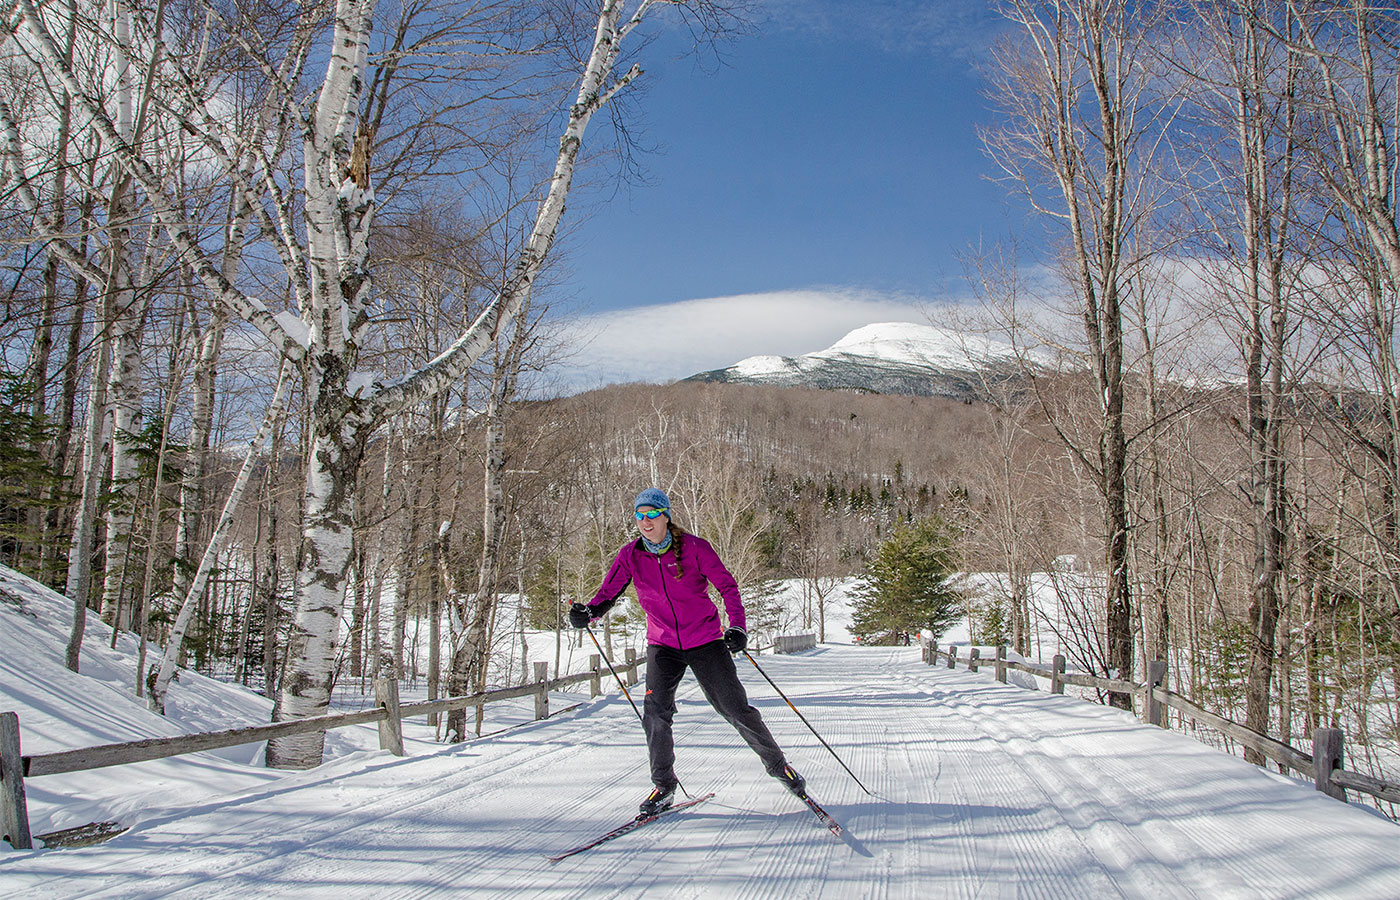 XC skiing in the shadow of Mt. Washington at Great Glen Trails Outdoor Center